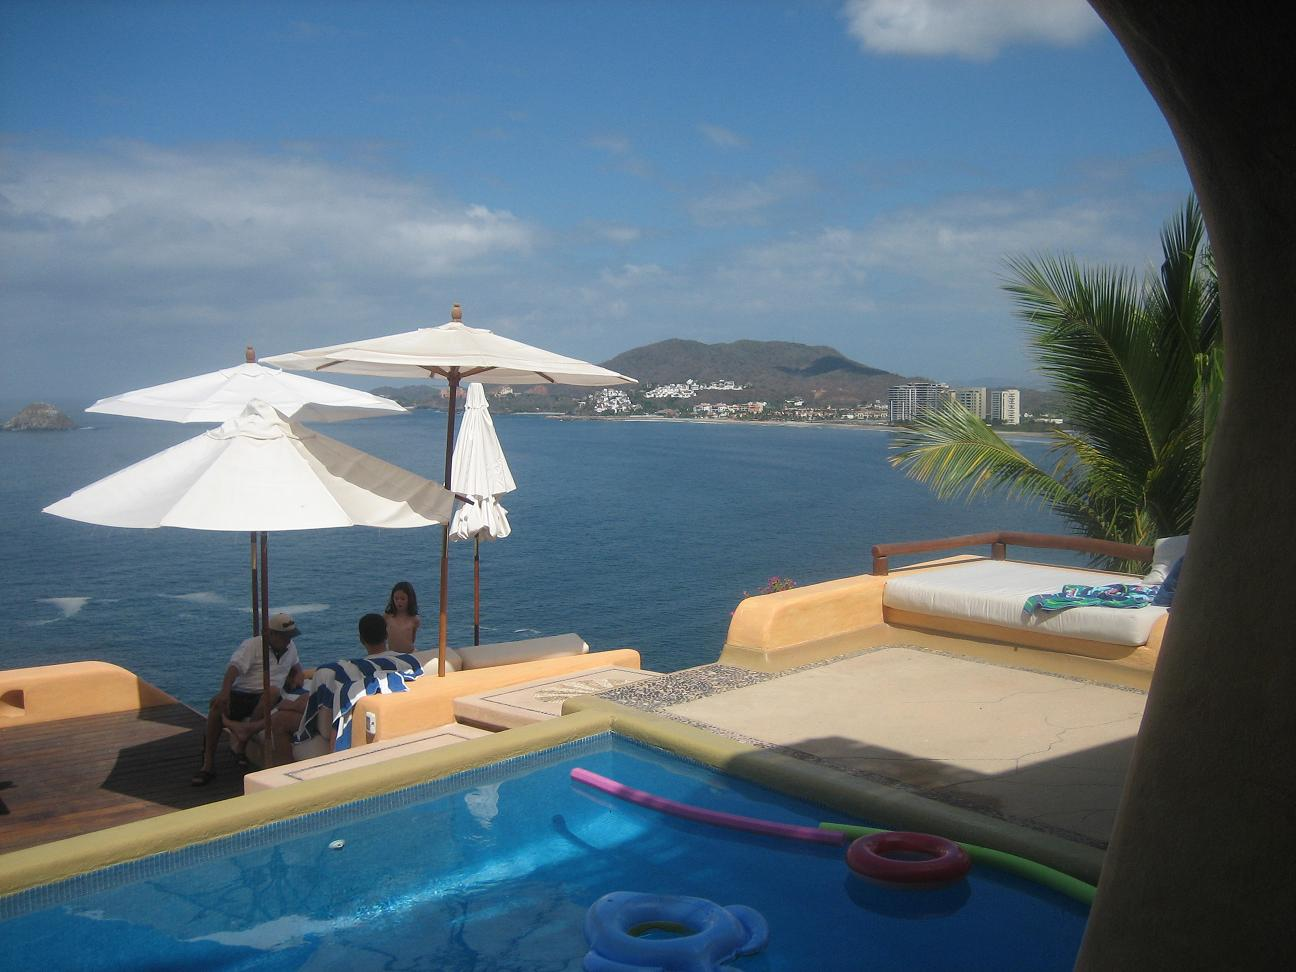 The view over Ixtapa's bay from Casa del Sol